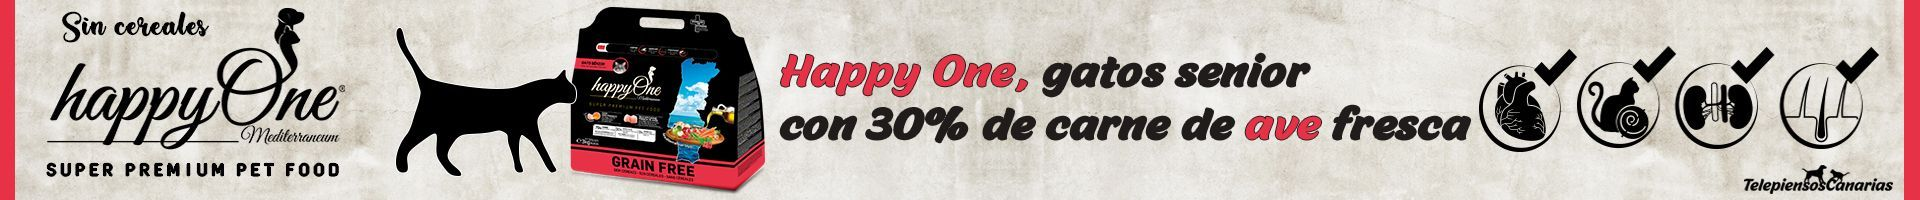 Happy One pienso gatos senior con 30% de carne de ave fresca